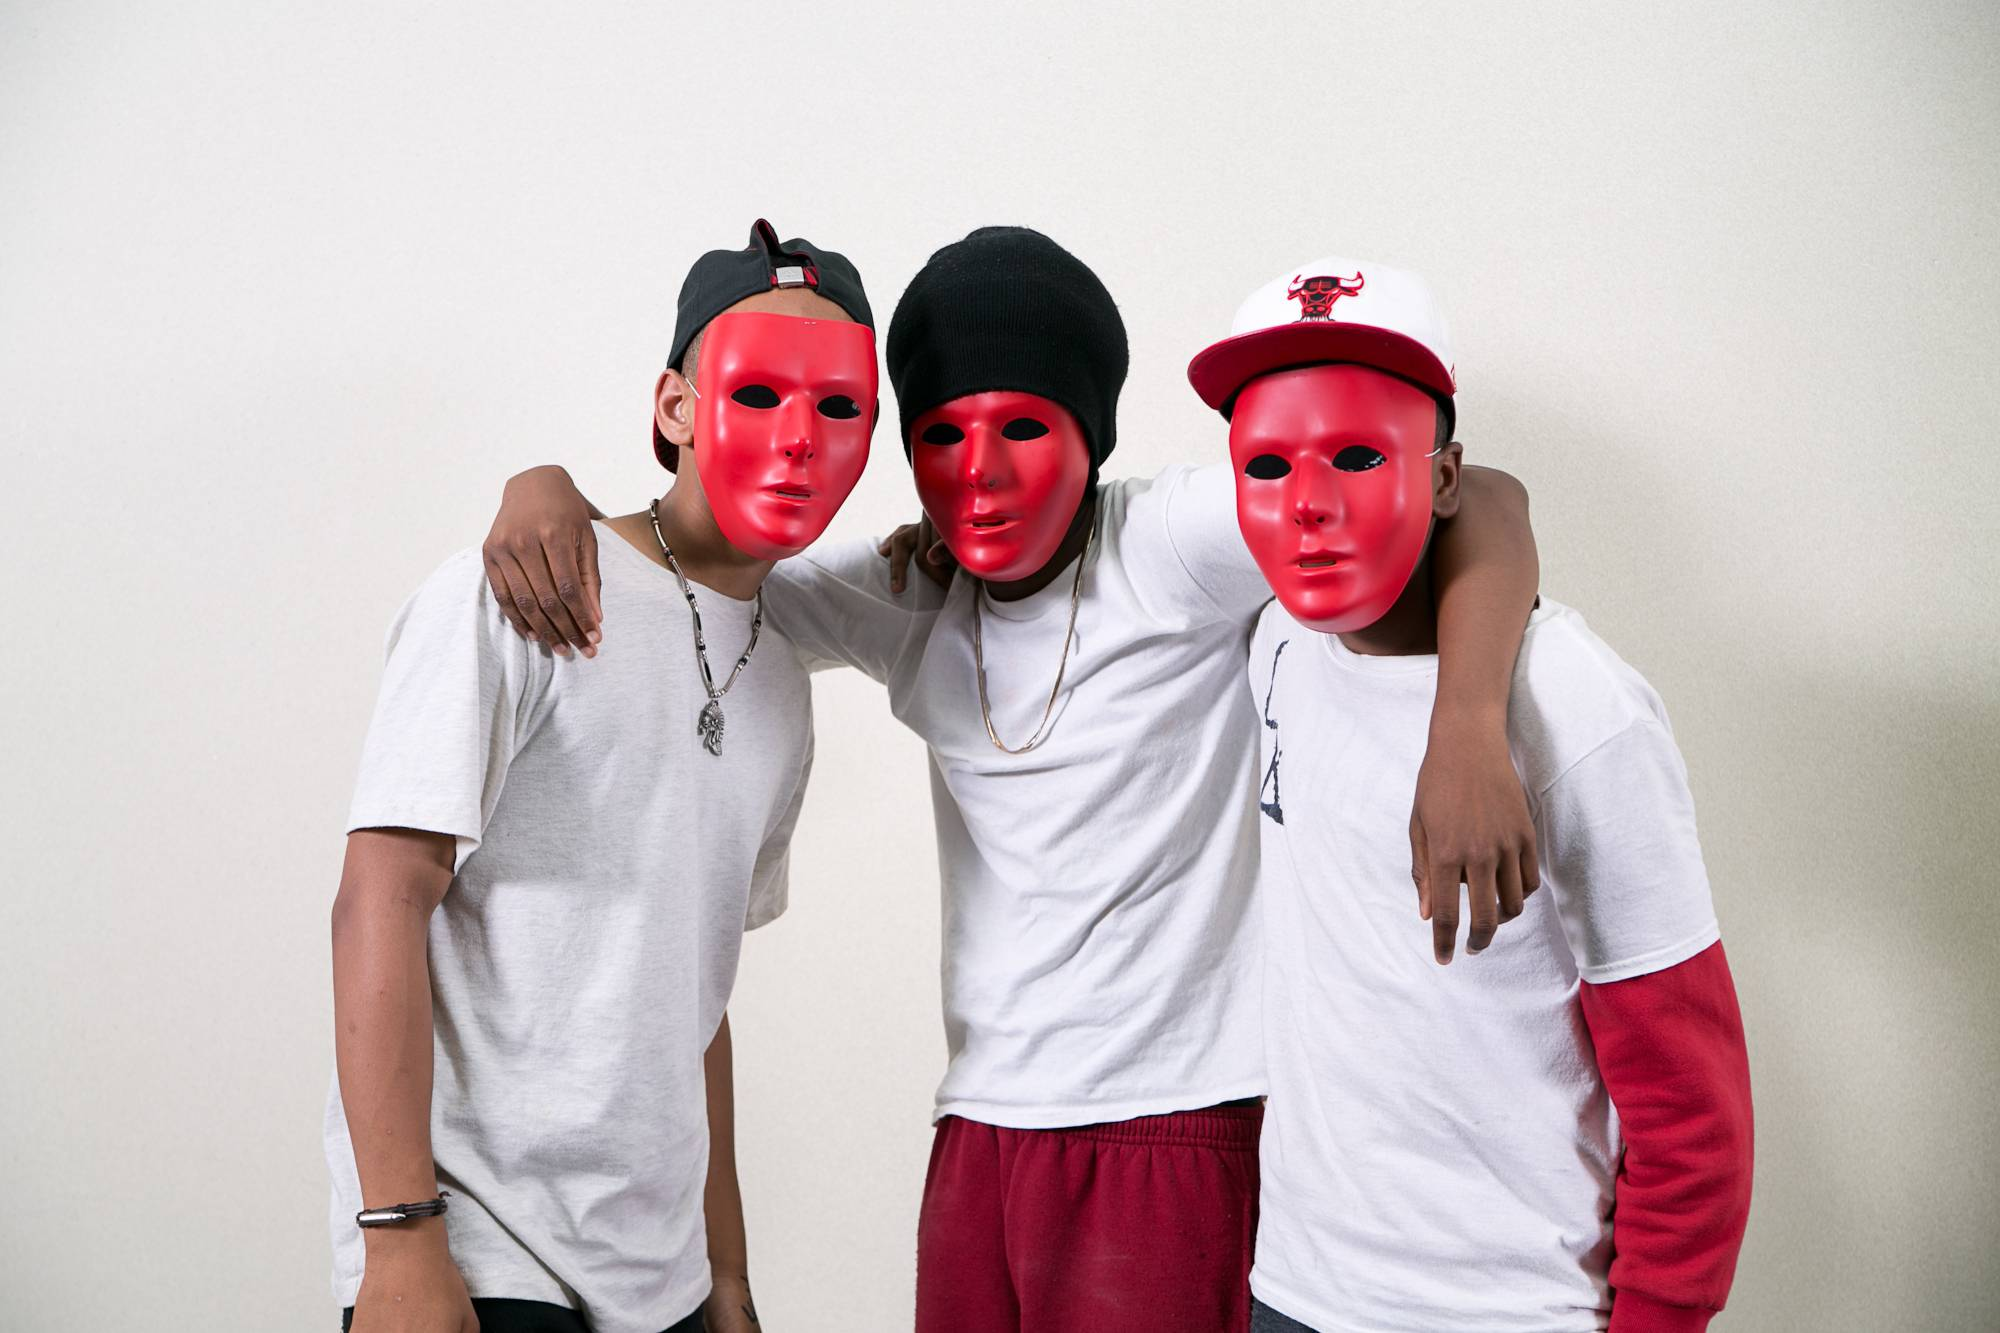 Sean Adams of Hanover Park, Vernon Davis of Streamwood and Armond Mayberry of Hanover Park make up Mysterious Krew.